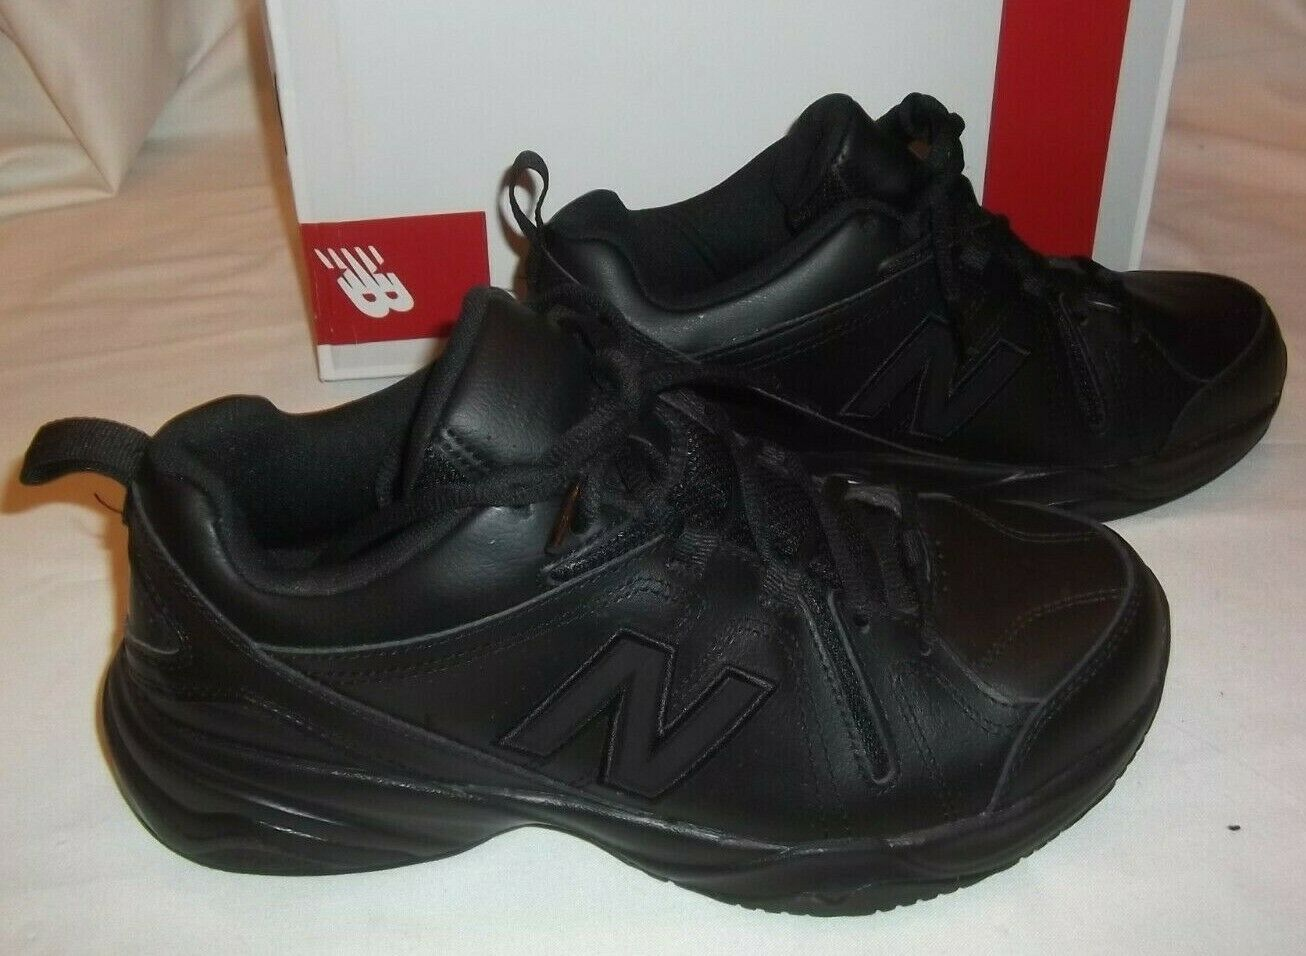 NEW BALANCE MX608V4B MENS TRAINING zapatos zapatillas NEW TallaS 8.5 10